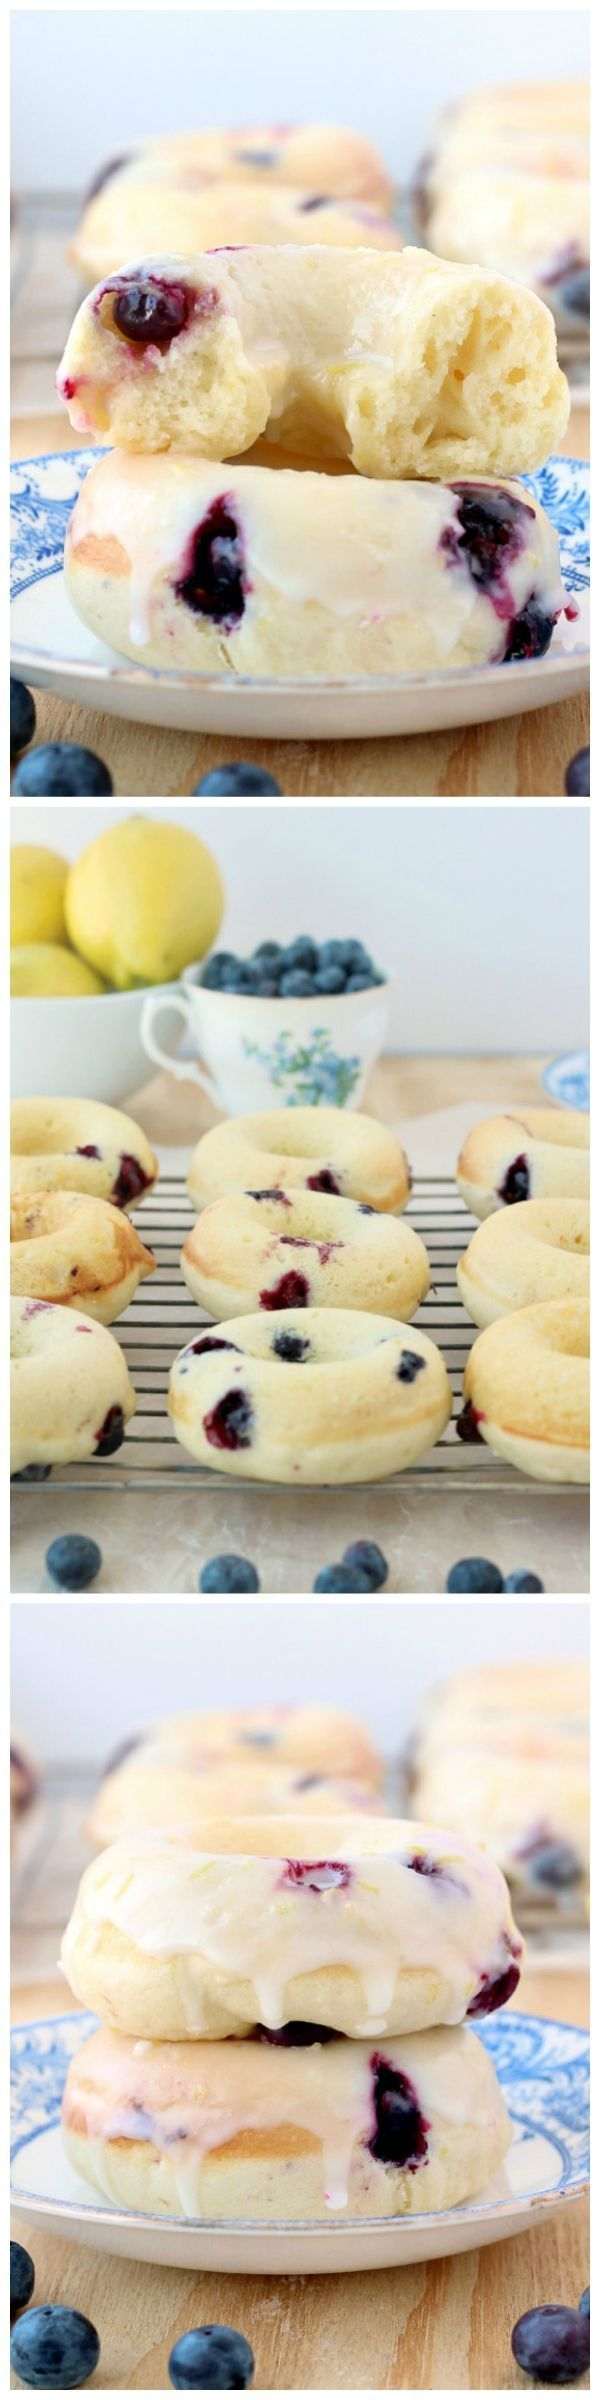 Ganz einfaches Tolles Donut Rezept - Blaubeeren mit Zitrone und Buttermilch *** Fresh and fruity baked Blueberry Doughnuts!! These are so yummy, and easy to make!!